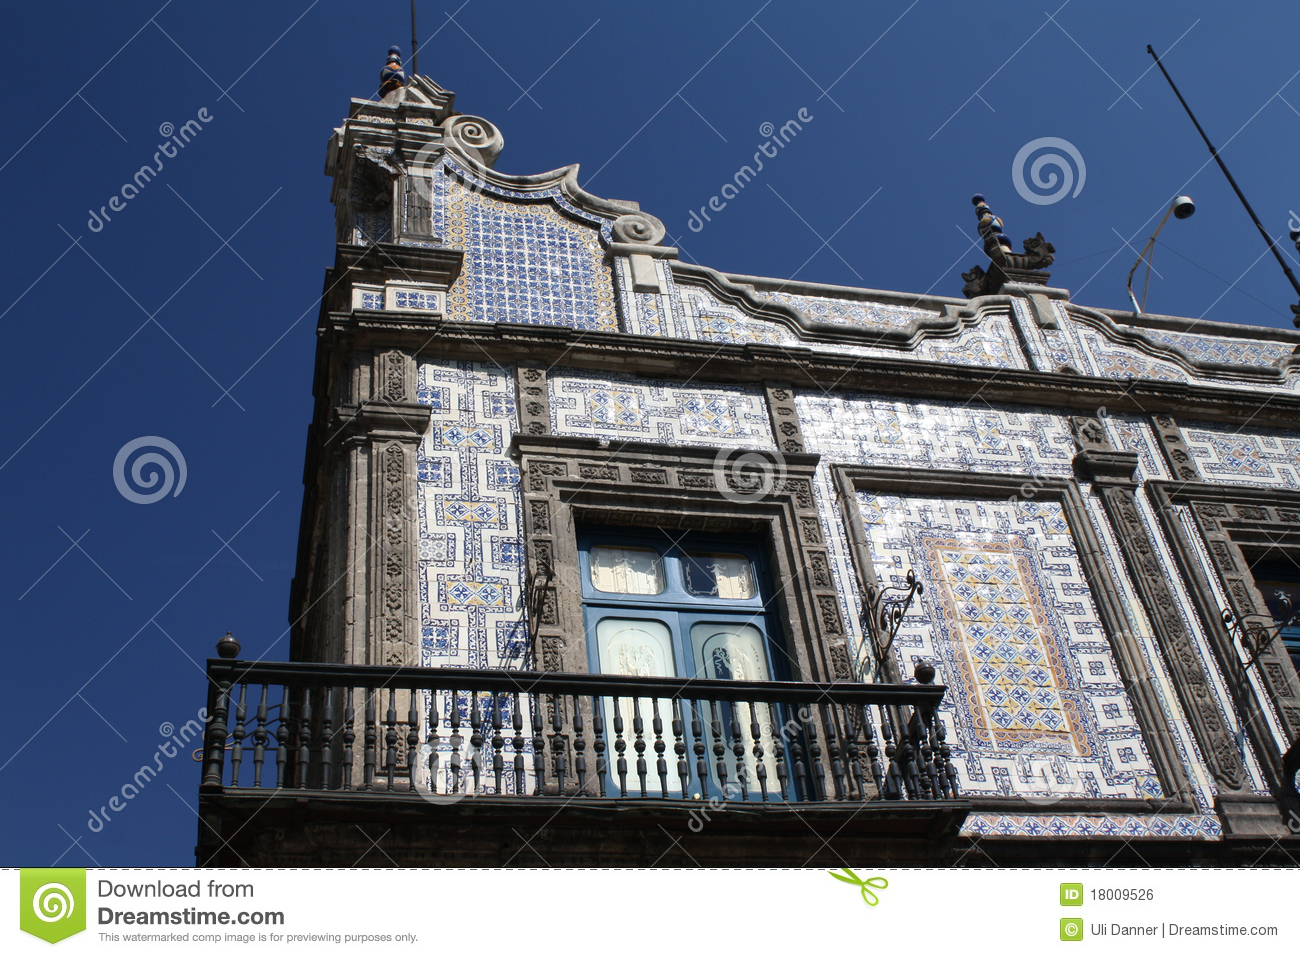 Casa de los azulejos mexico city stock photo image for Casa de azulejos